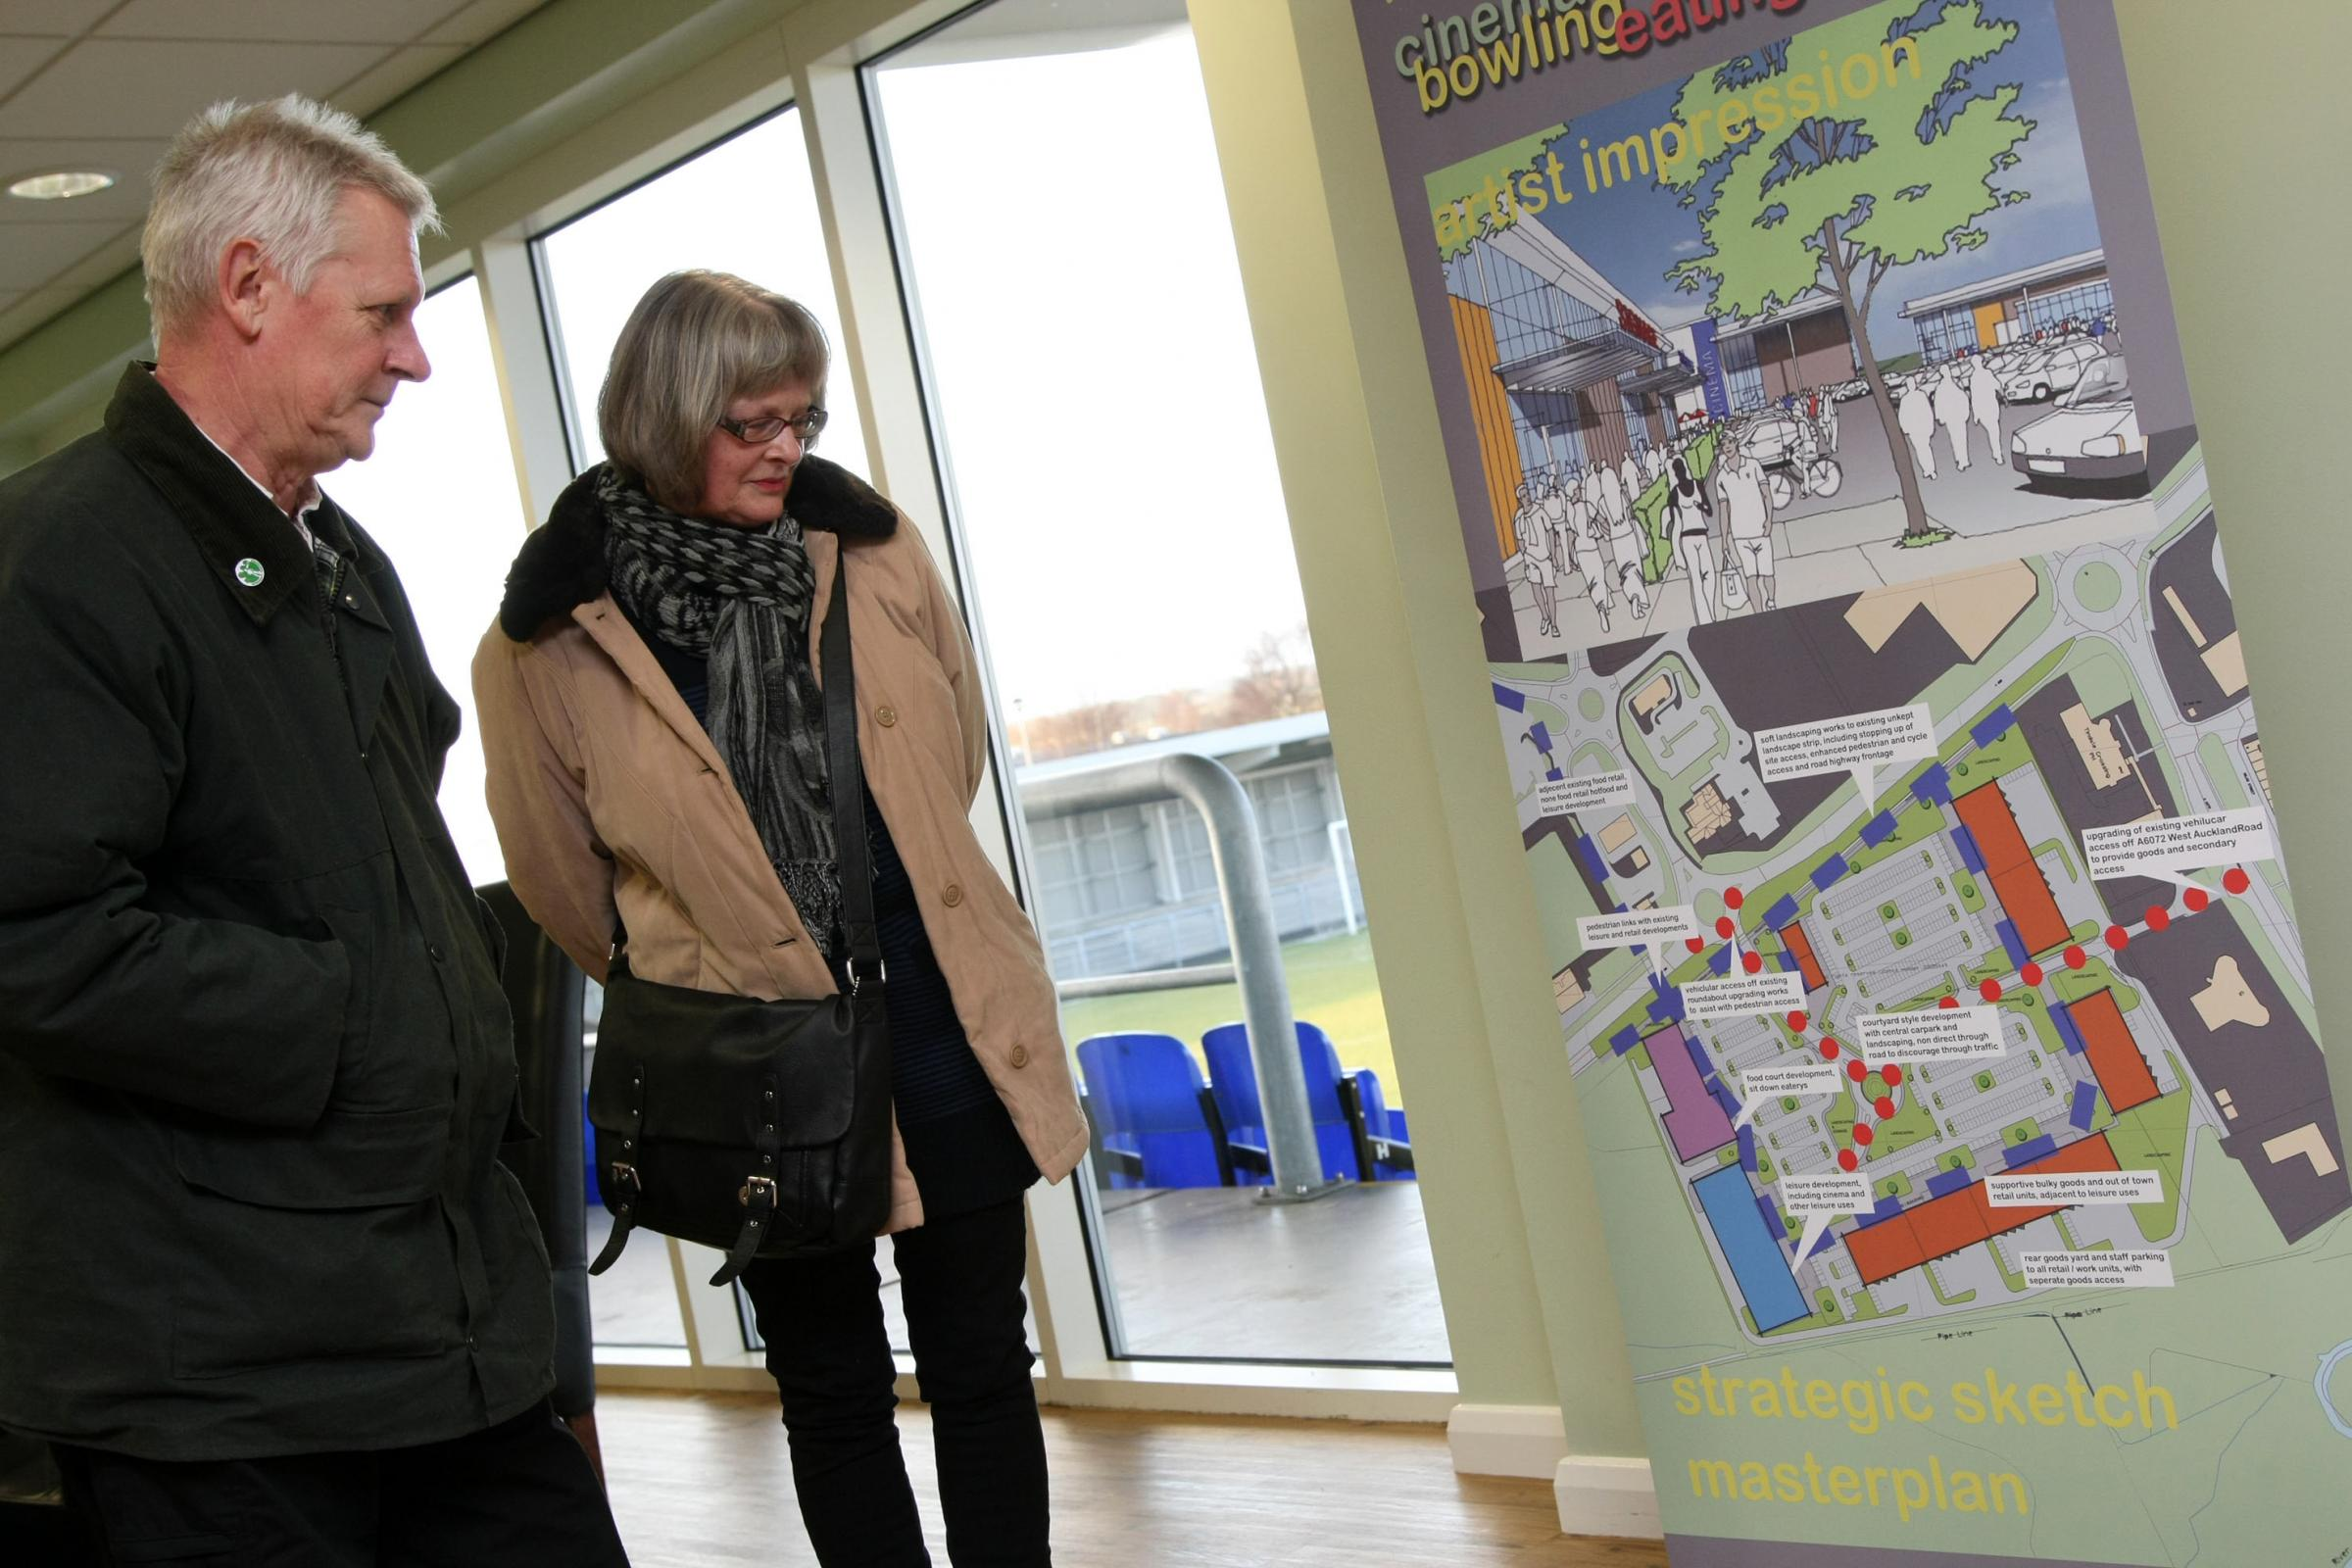 Residents survey the cinema plans at a public consultation held in 2012, the vast majority were in favour of the scheme